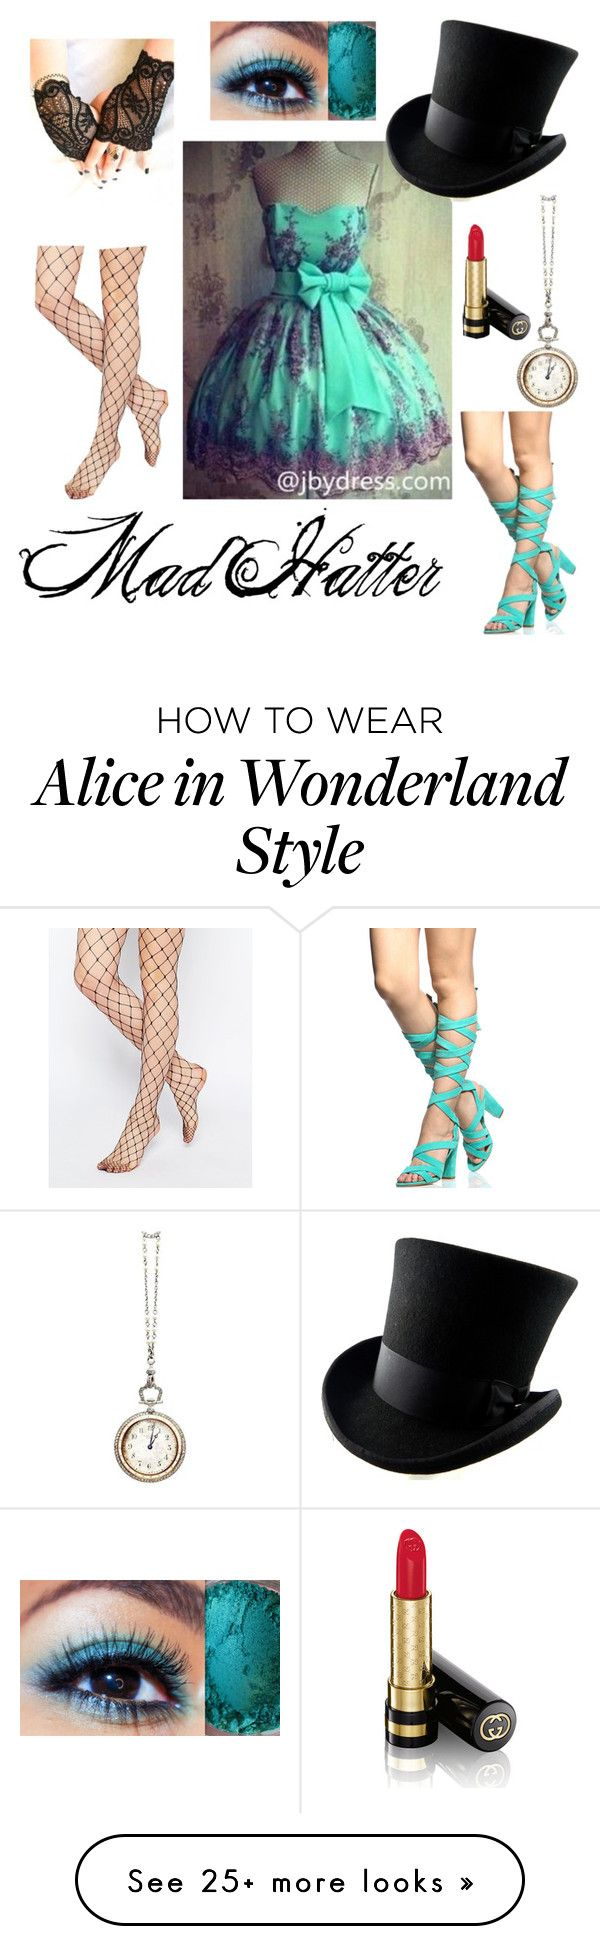 """Alice in Wonderland: Mad Hatter"" by hopelessromance69 on Polyvore featuring ASOS, Cartier and Gucci"